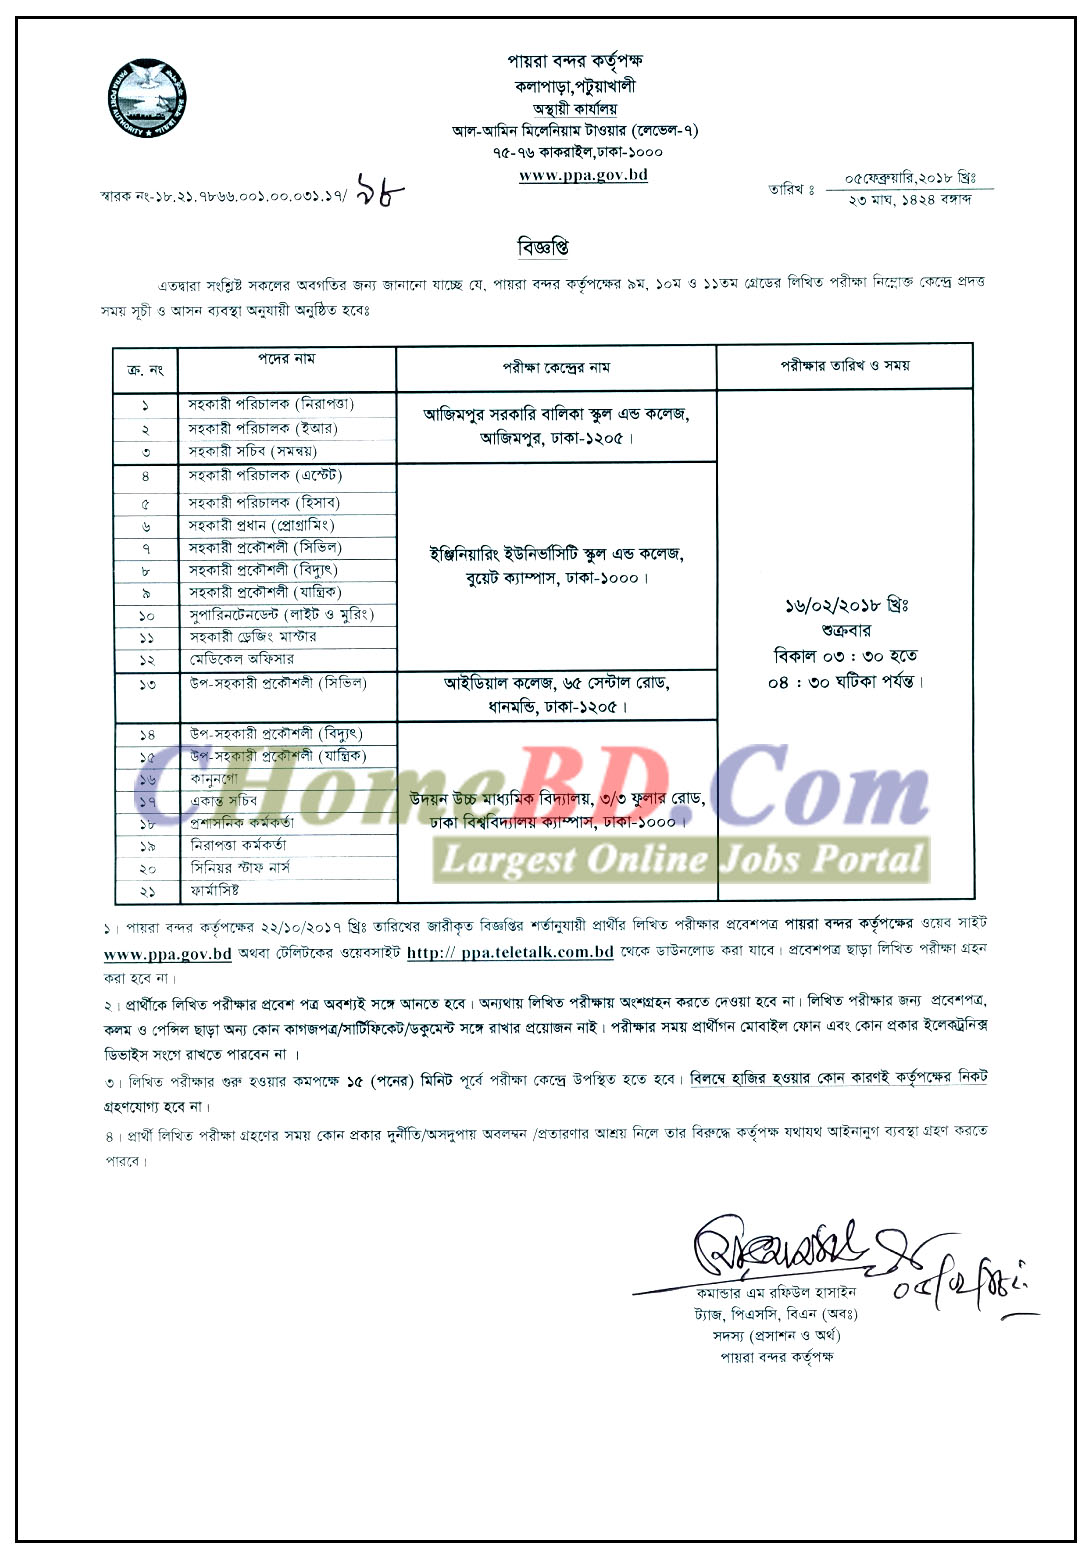 Payra Port Authority (PPA) Admit Card & Exam Schedule